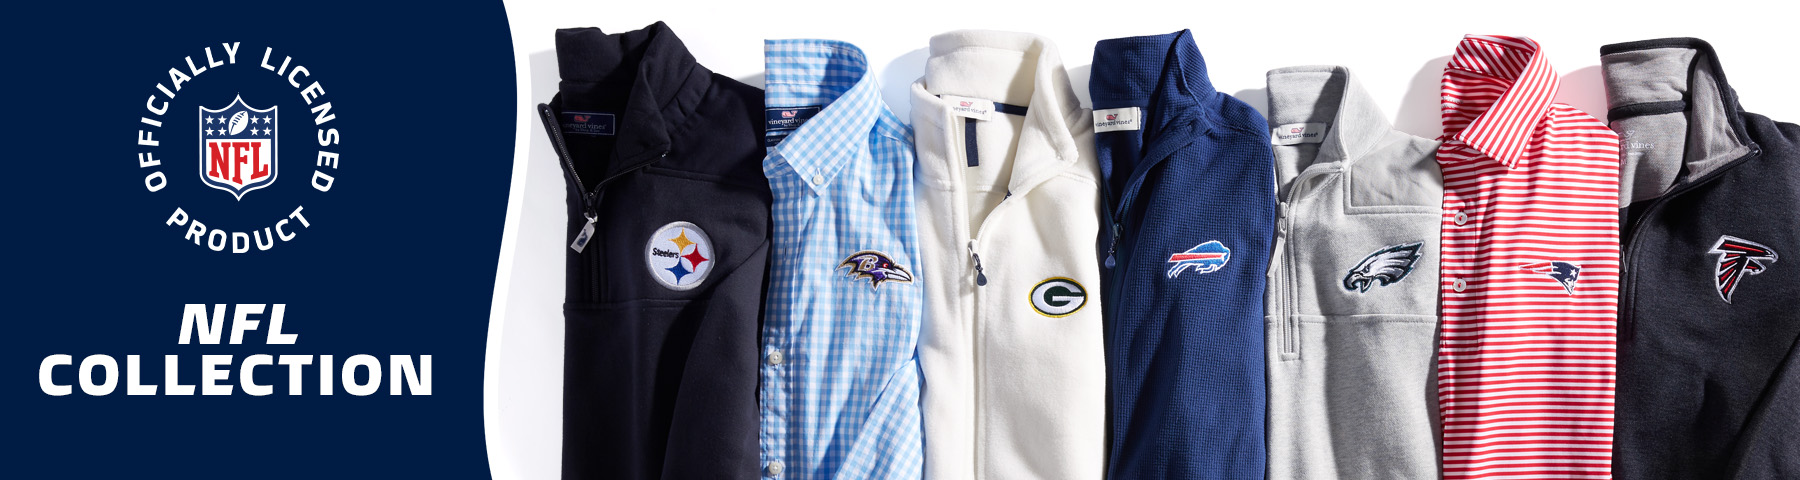 vineyard vines is an official carrier of NFL Products. Shop Here!